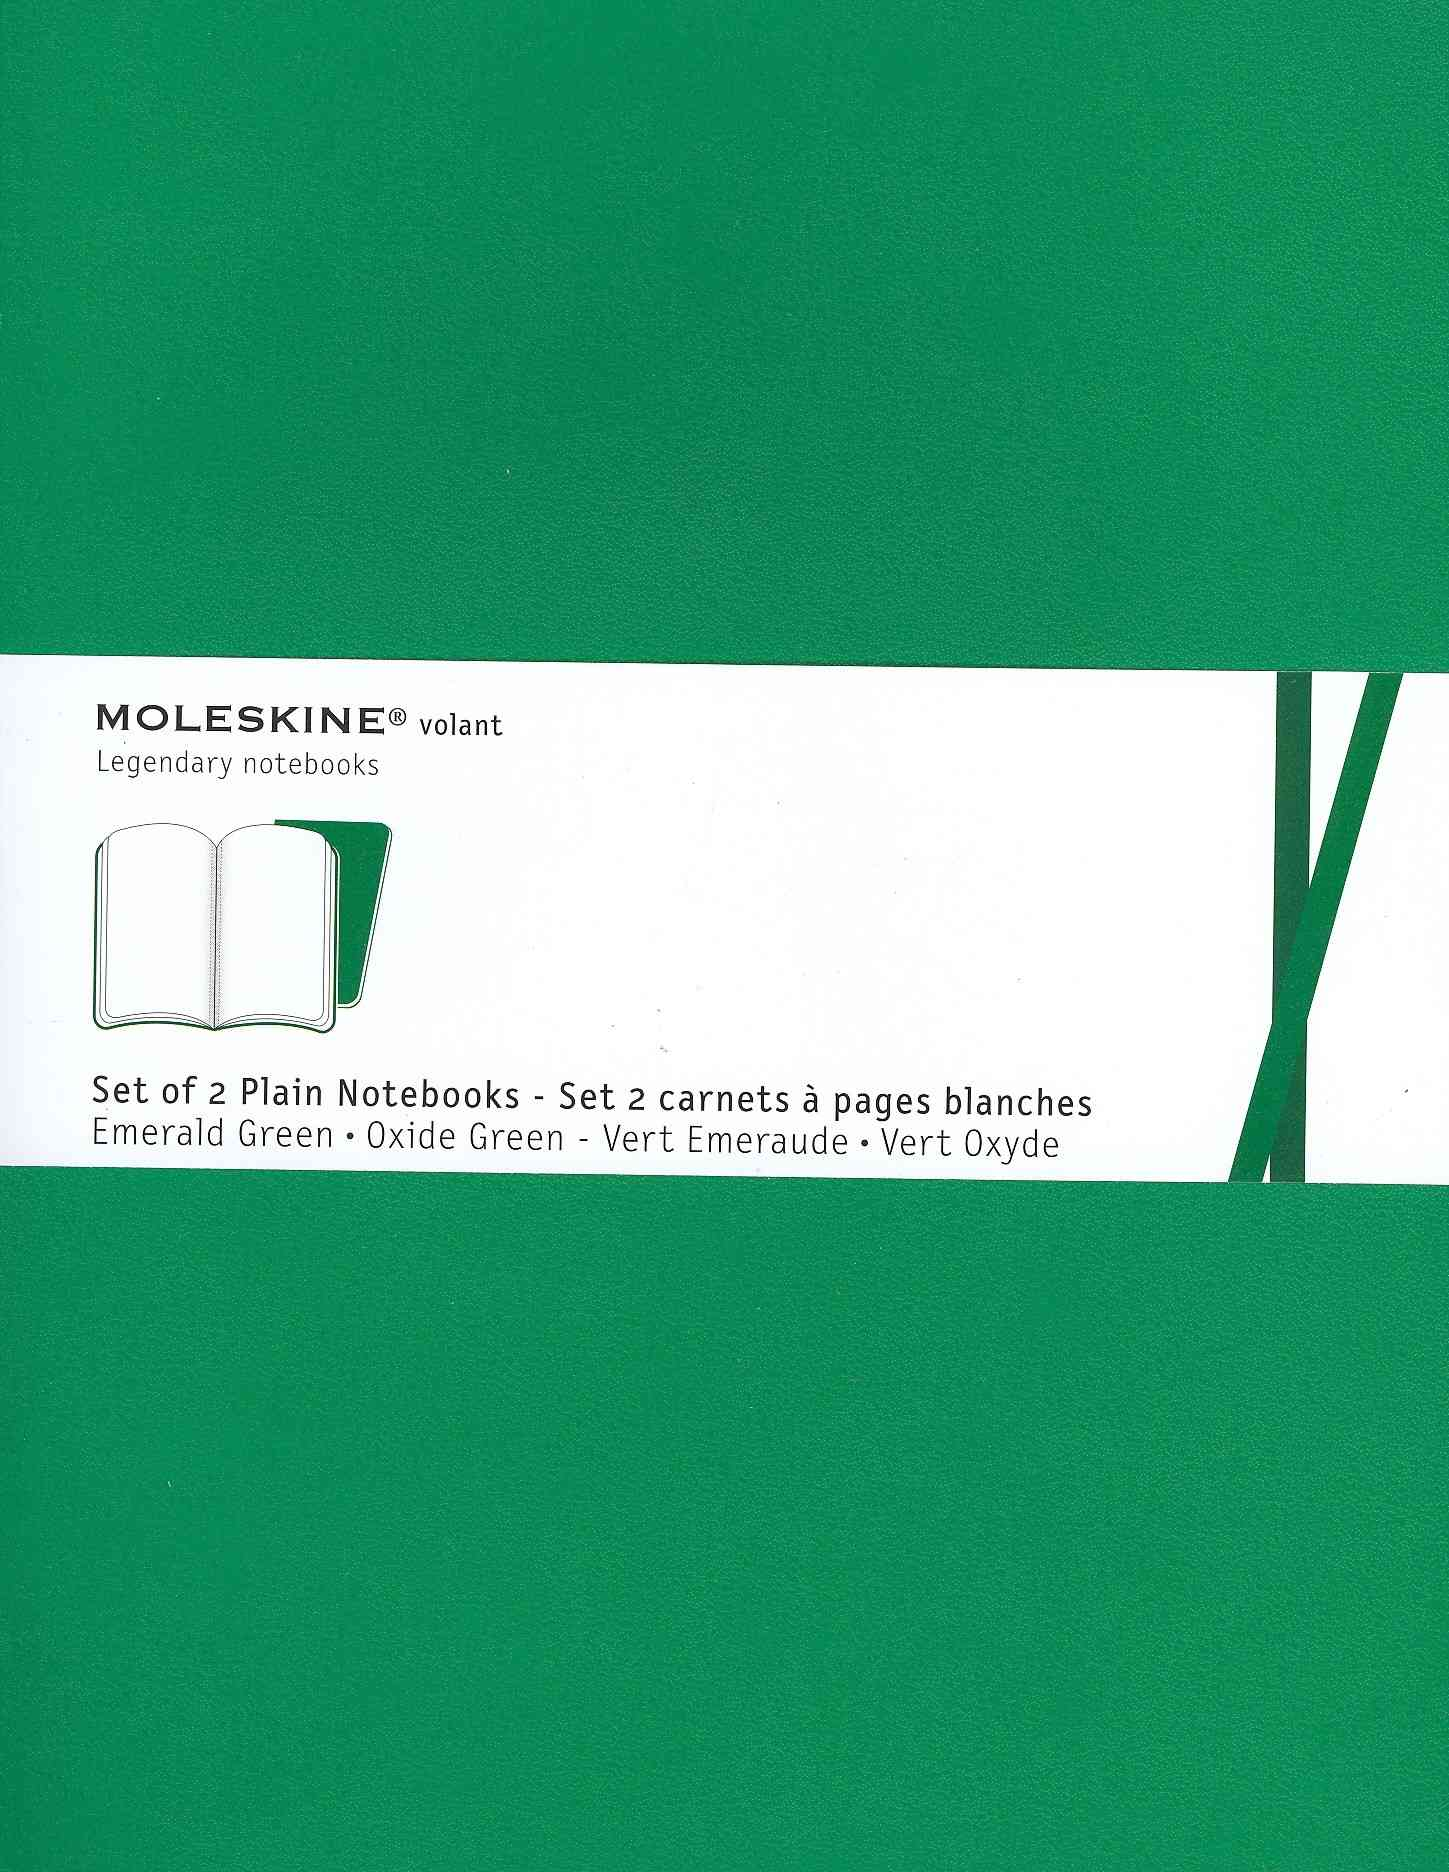 Moleskine Volant Emerald Green / Oxide Green Extra Large (Notebook / blank book)